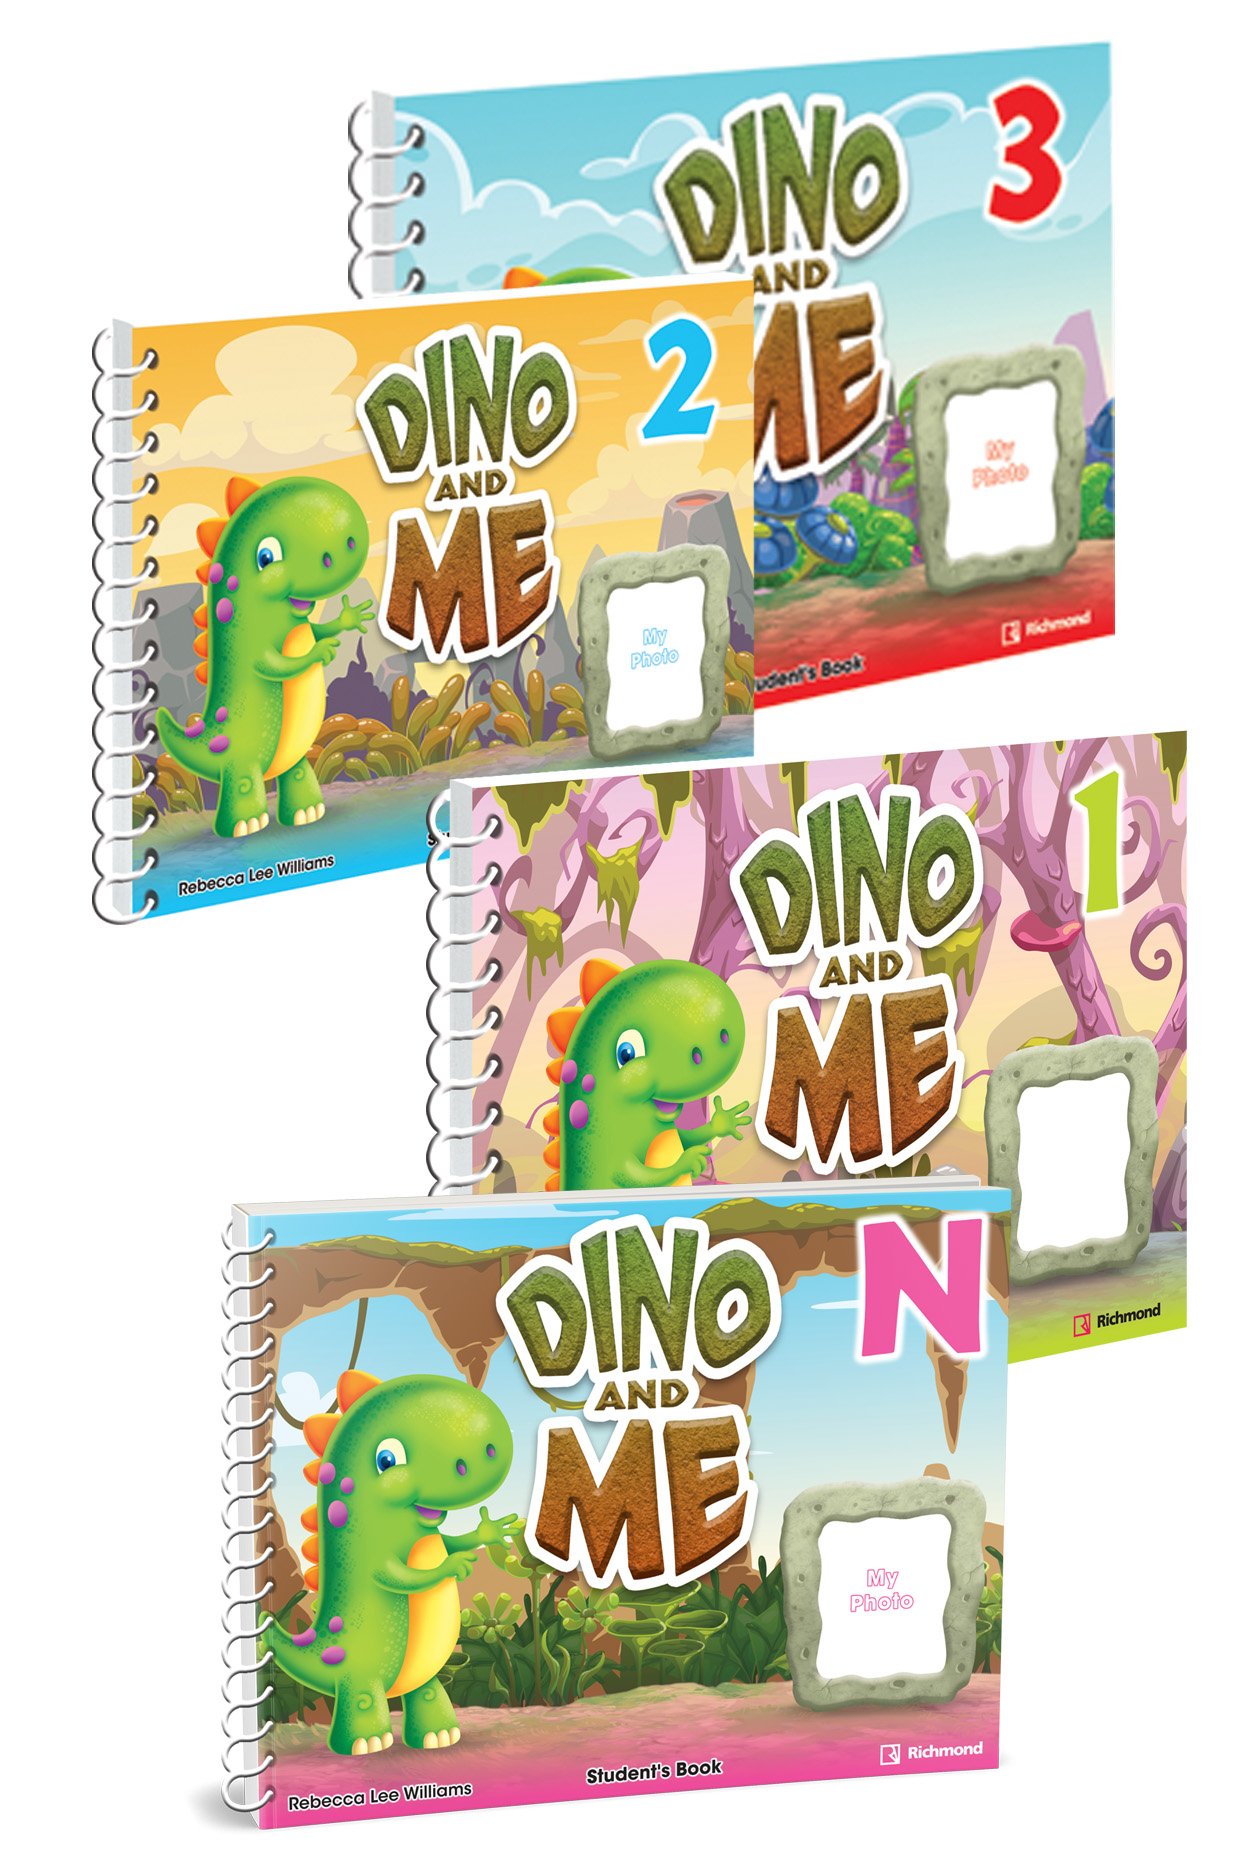 Dino_and_ME_new3